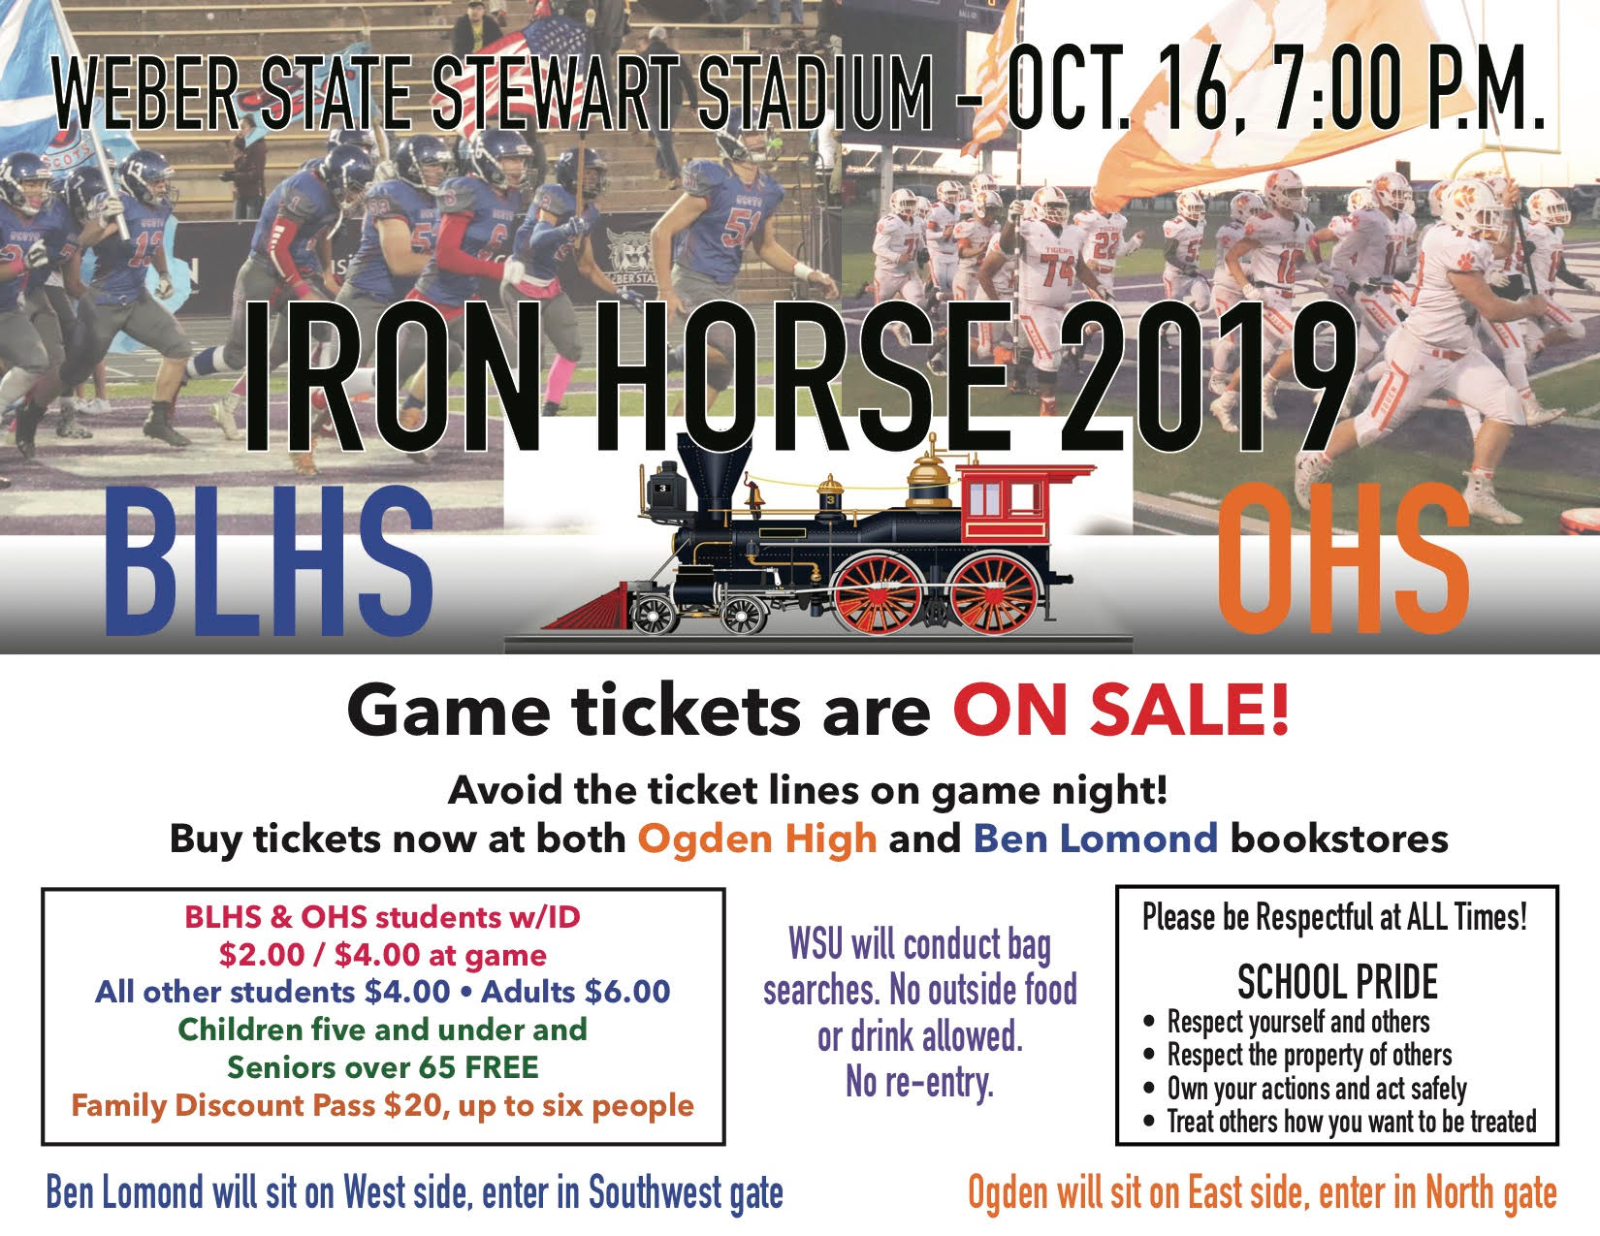 Iron Horse Tickets on Sale Now!